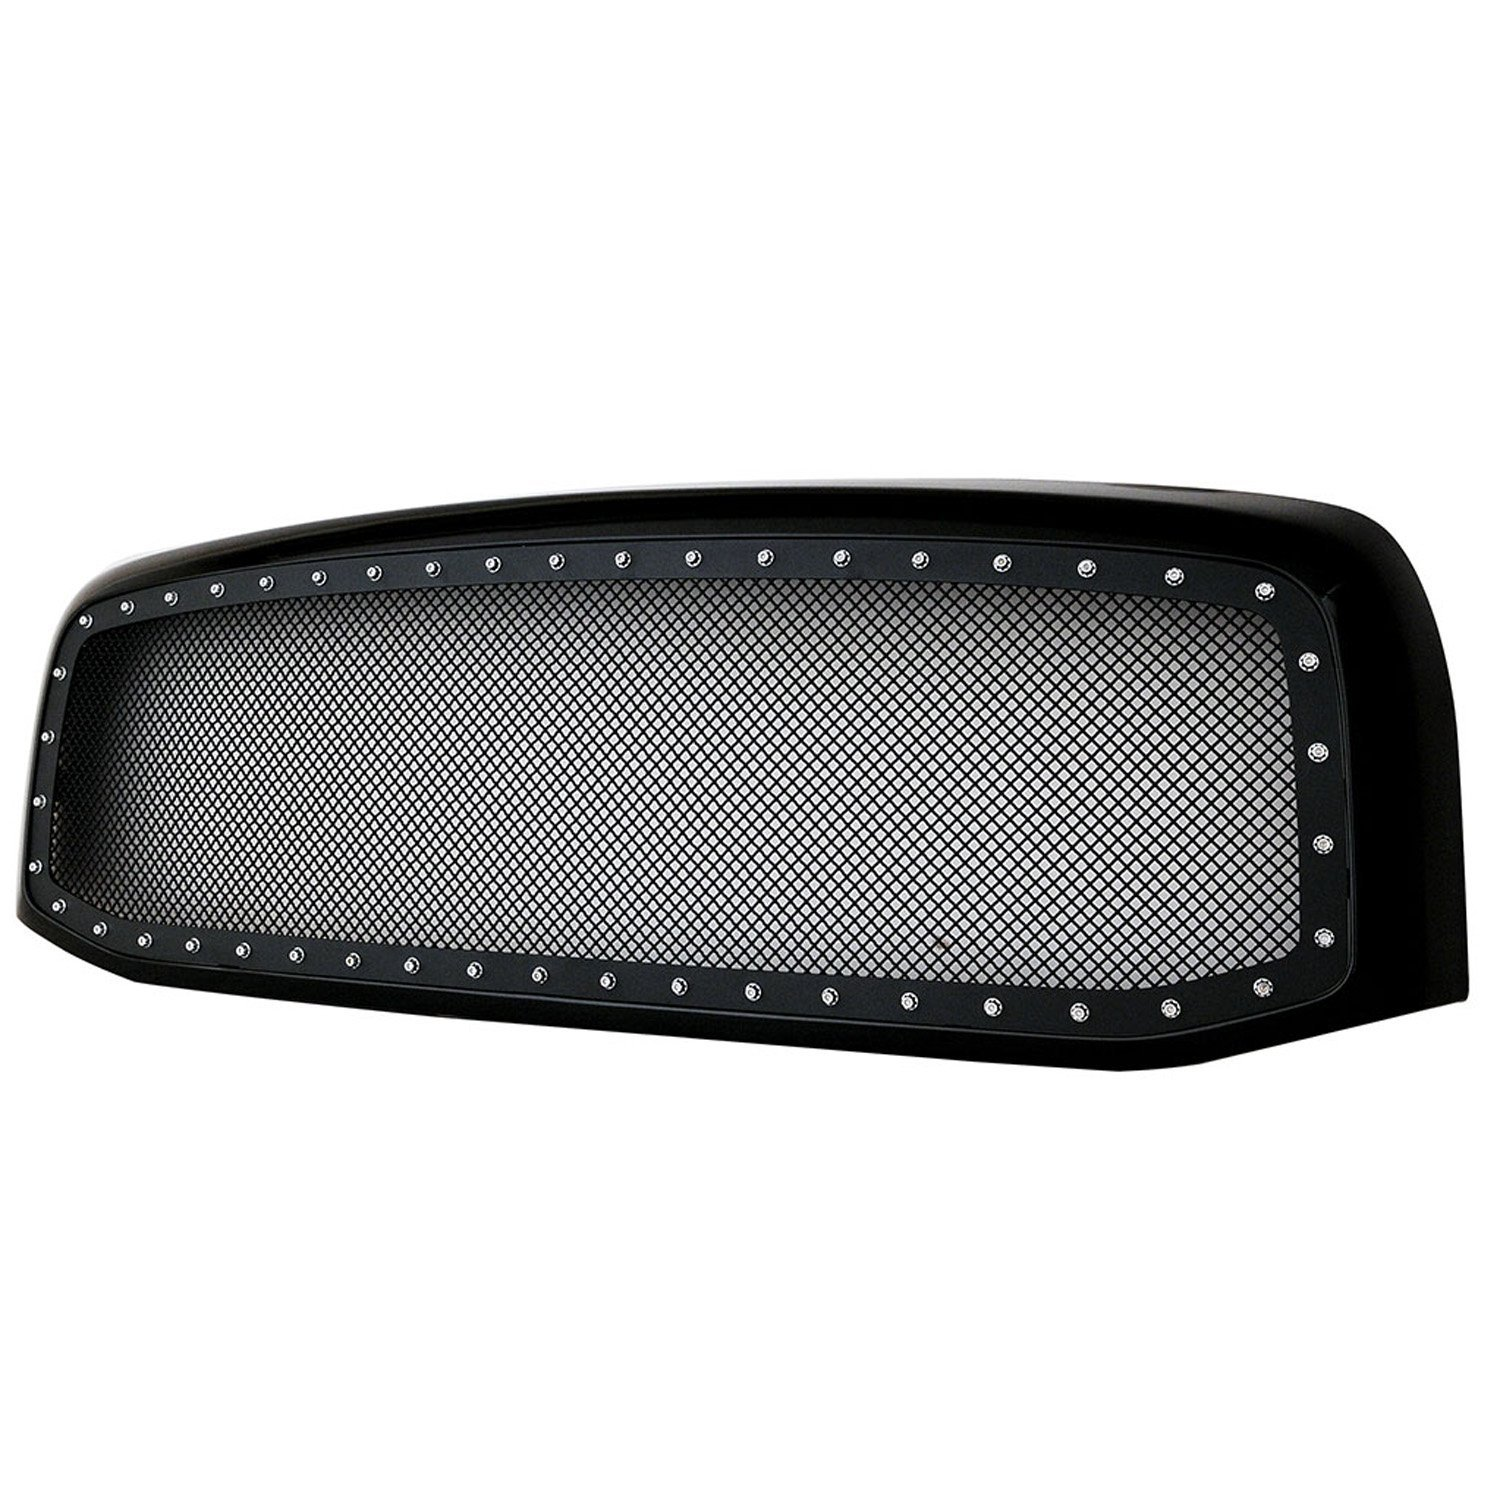 Paramount Restyling 46-0212 Evolution Black Stainless Steel Wire Mesh Packaged Grille 1 Piece